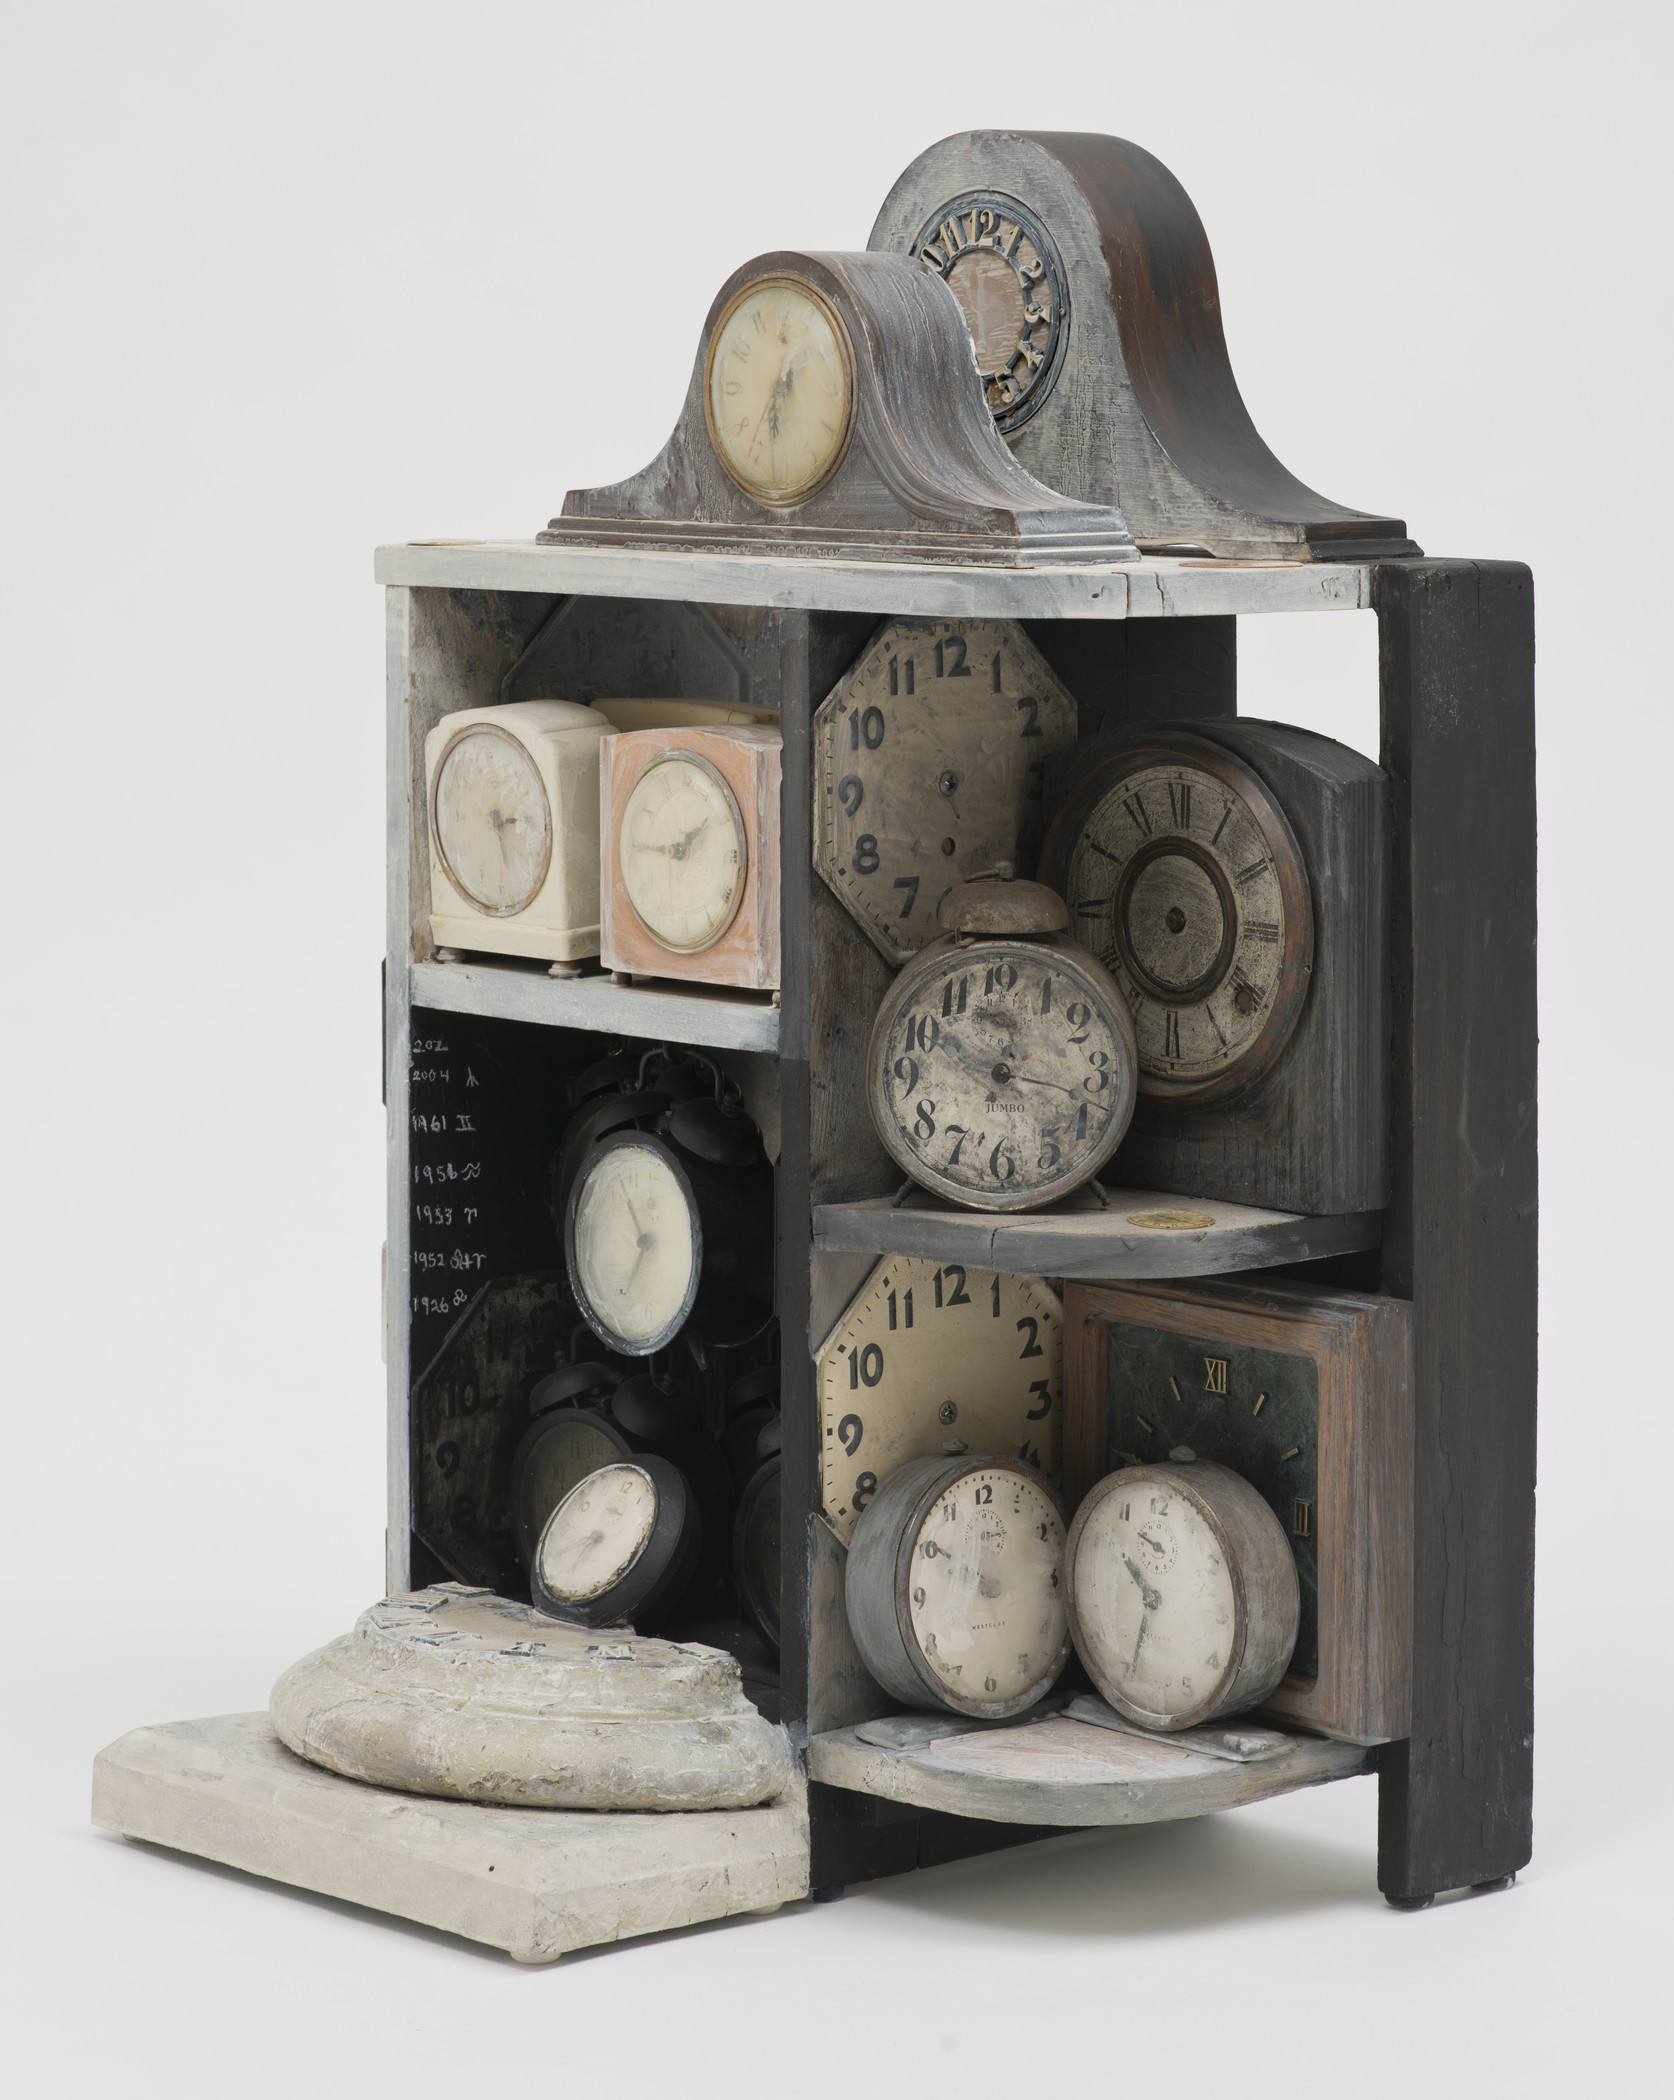 Betye Saar, Still Ticking, 2005, courtesy of the artist and Roberts Projects, Los Angeles, CA, ©Betye Saar, photo by Brian Forrest